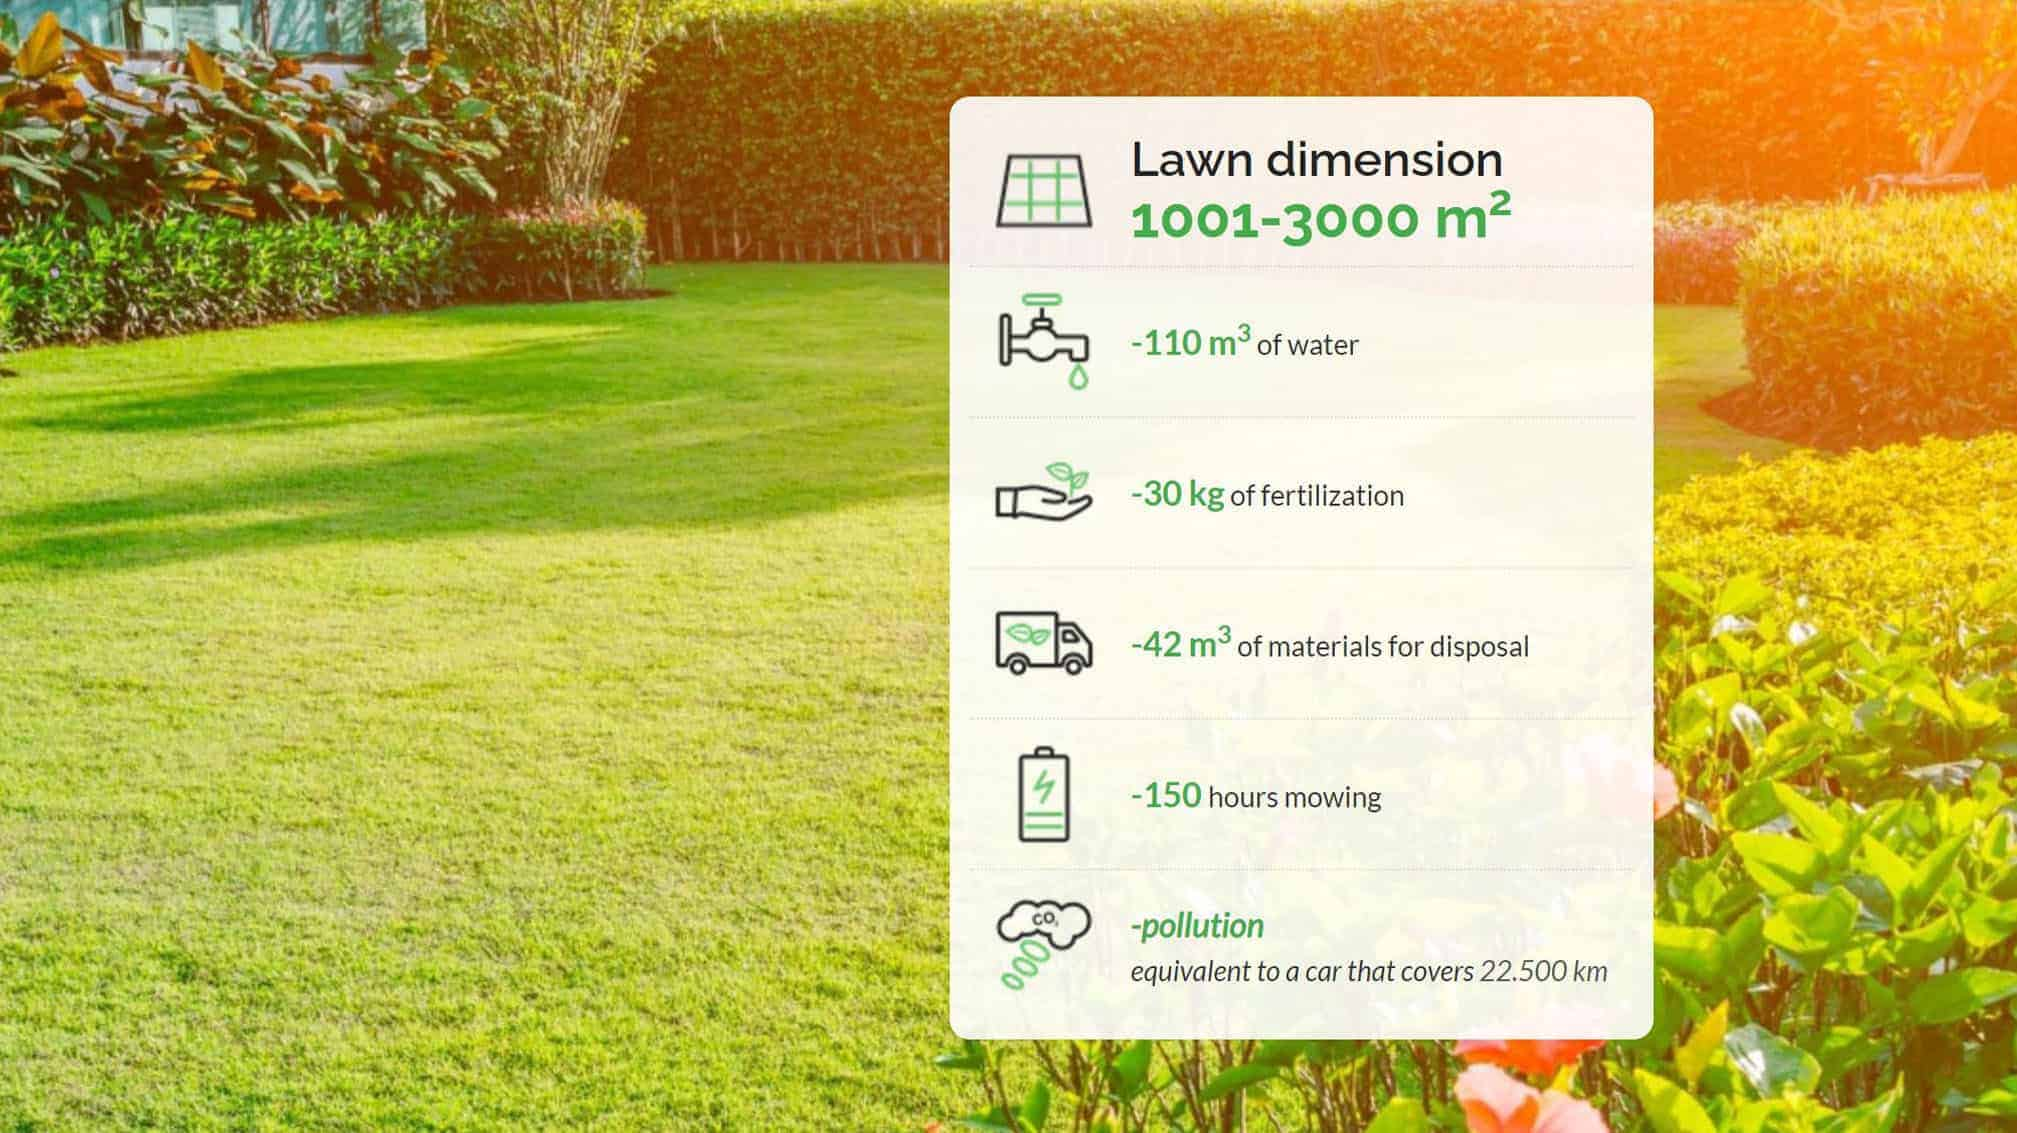 Annual saving by using a robotic mower in 1001-3000m2 lawn dimension-